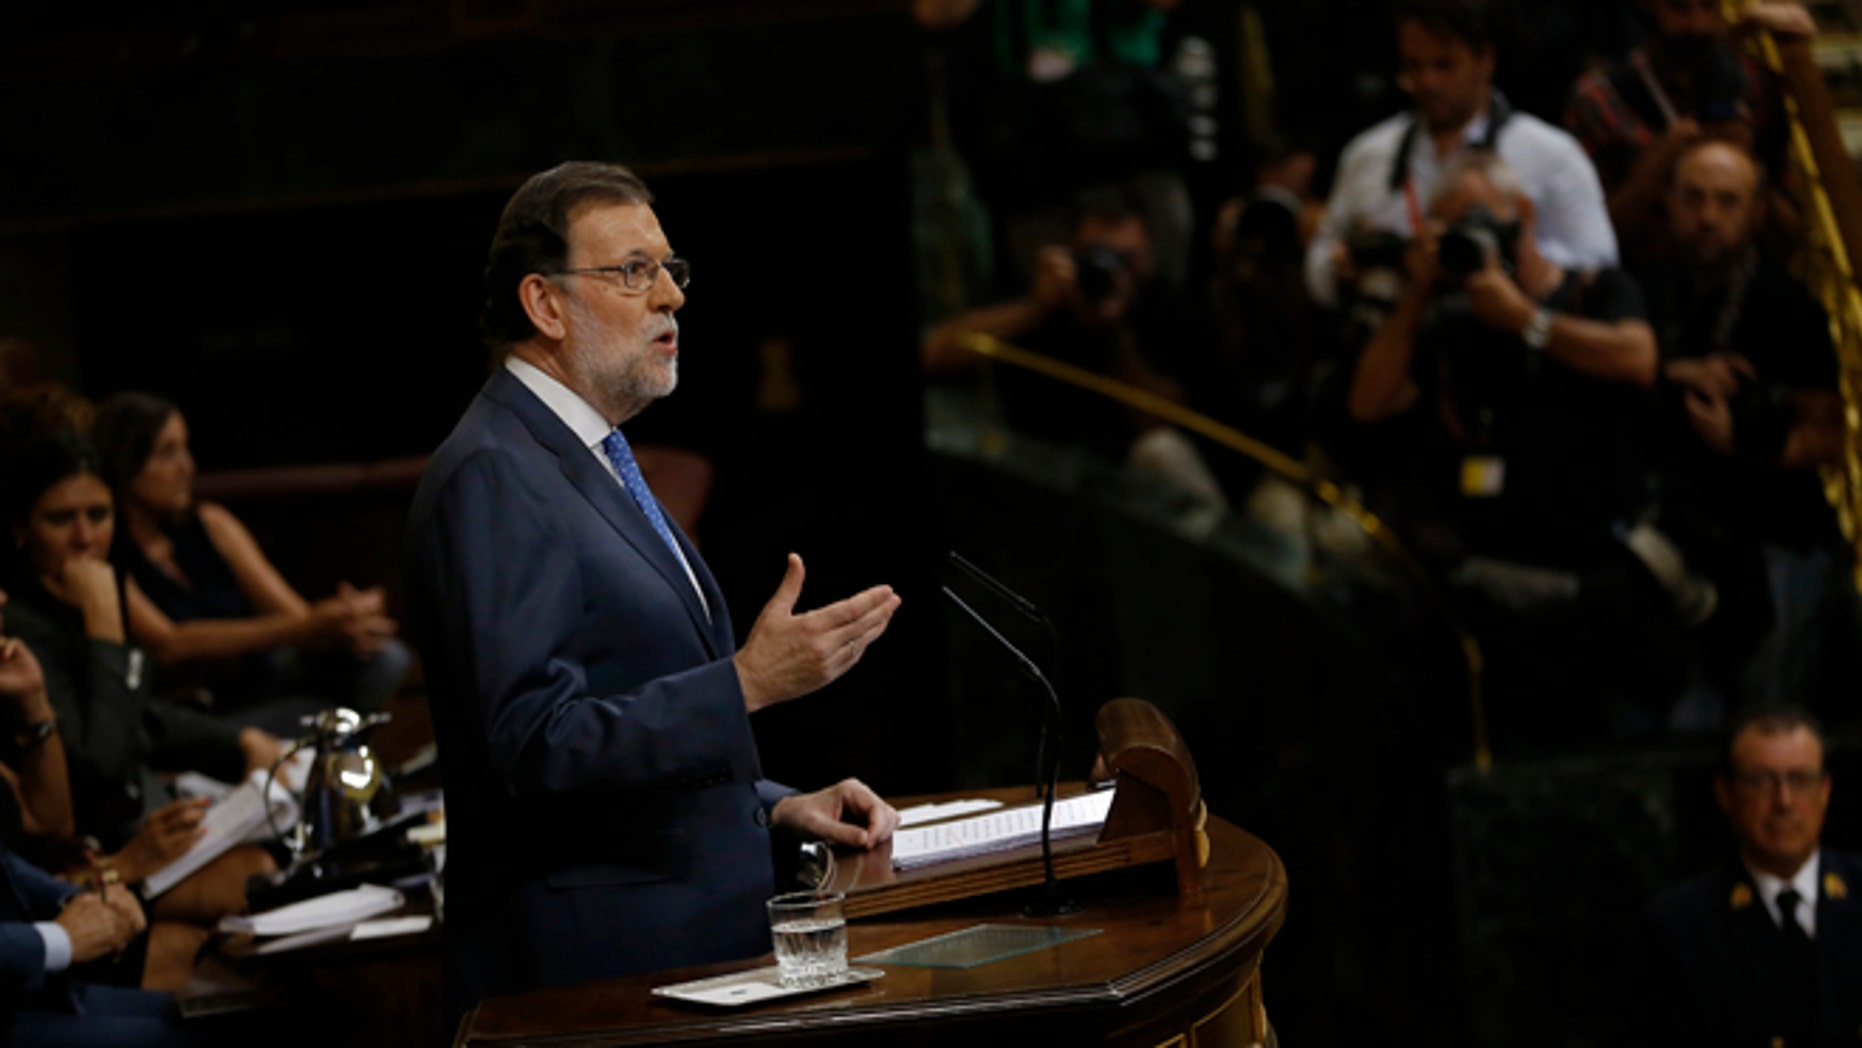 Spain's acting Prime Minister and Popular Party leader Mariano Rajoy addresses lawmakers during the first of the two-day investiture debate at the Spanish parliament in Madrid, Tuesday, Aug. 30, 2016. Rajoy is to start a two-day parliamentary debate later Tuesday ahead of a vote on his bid to form a minority government and end an eight-month political impasse, but the signs are he won't be successful. (AP Photo/Francisco Seco)